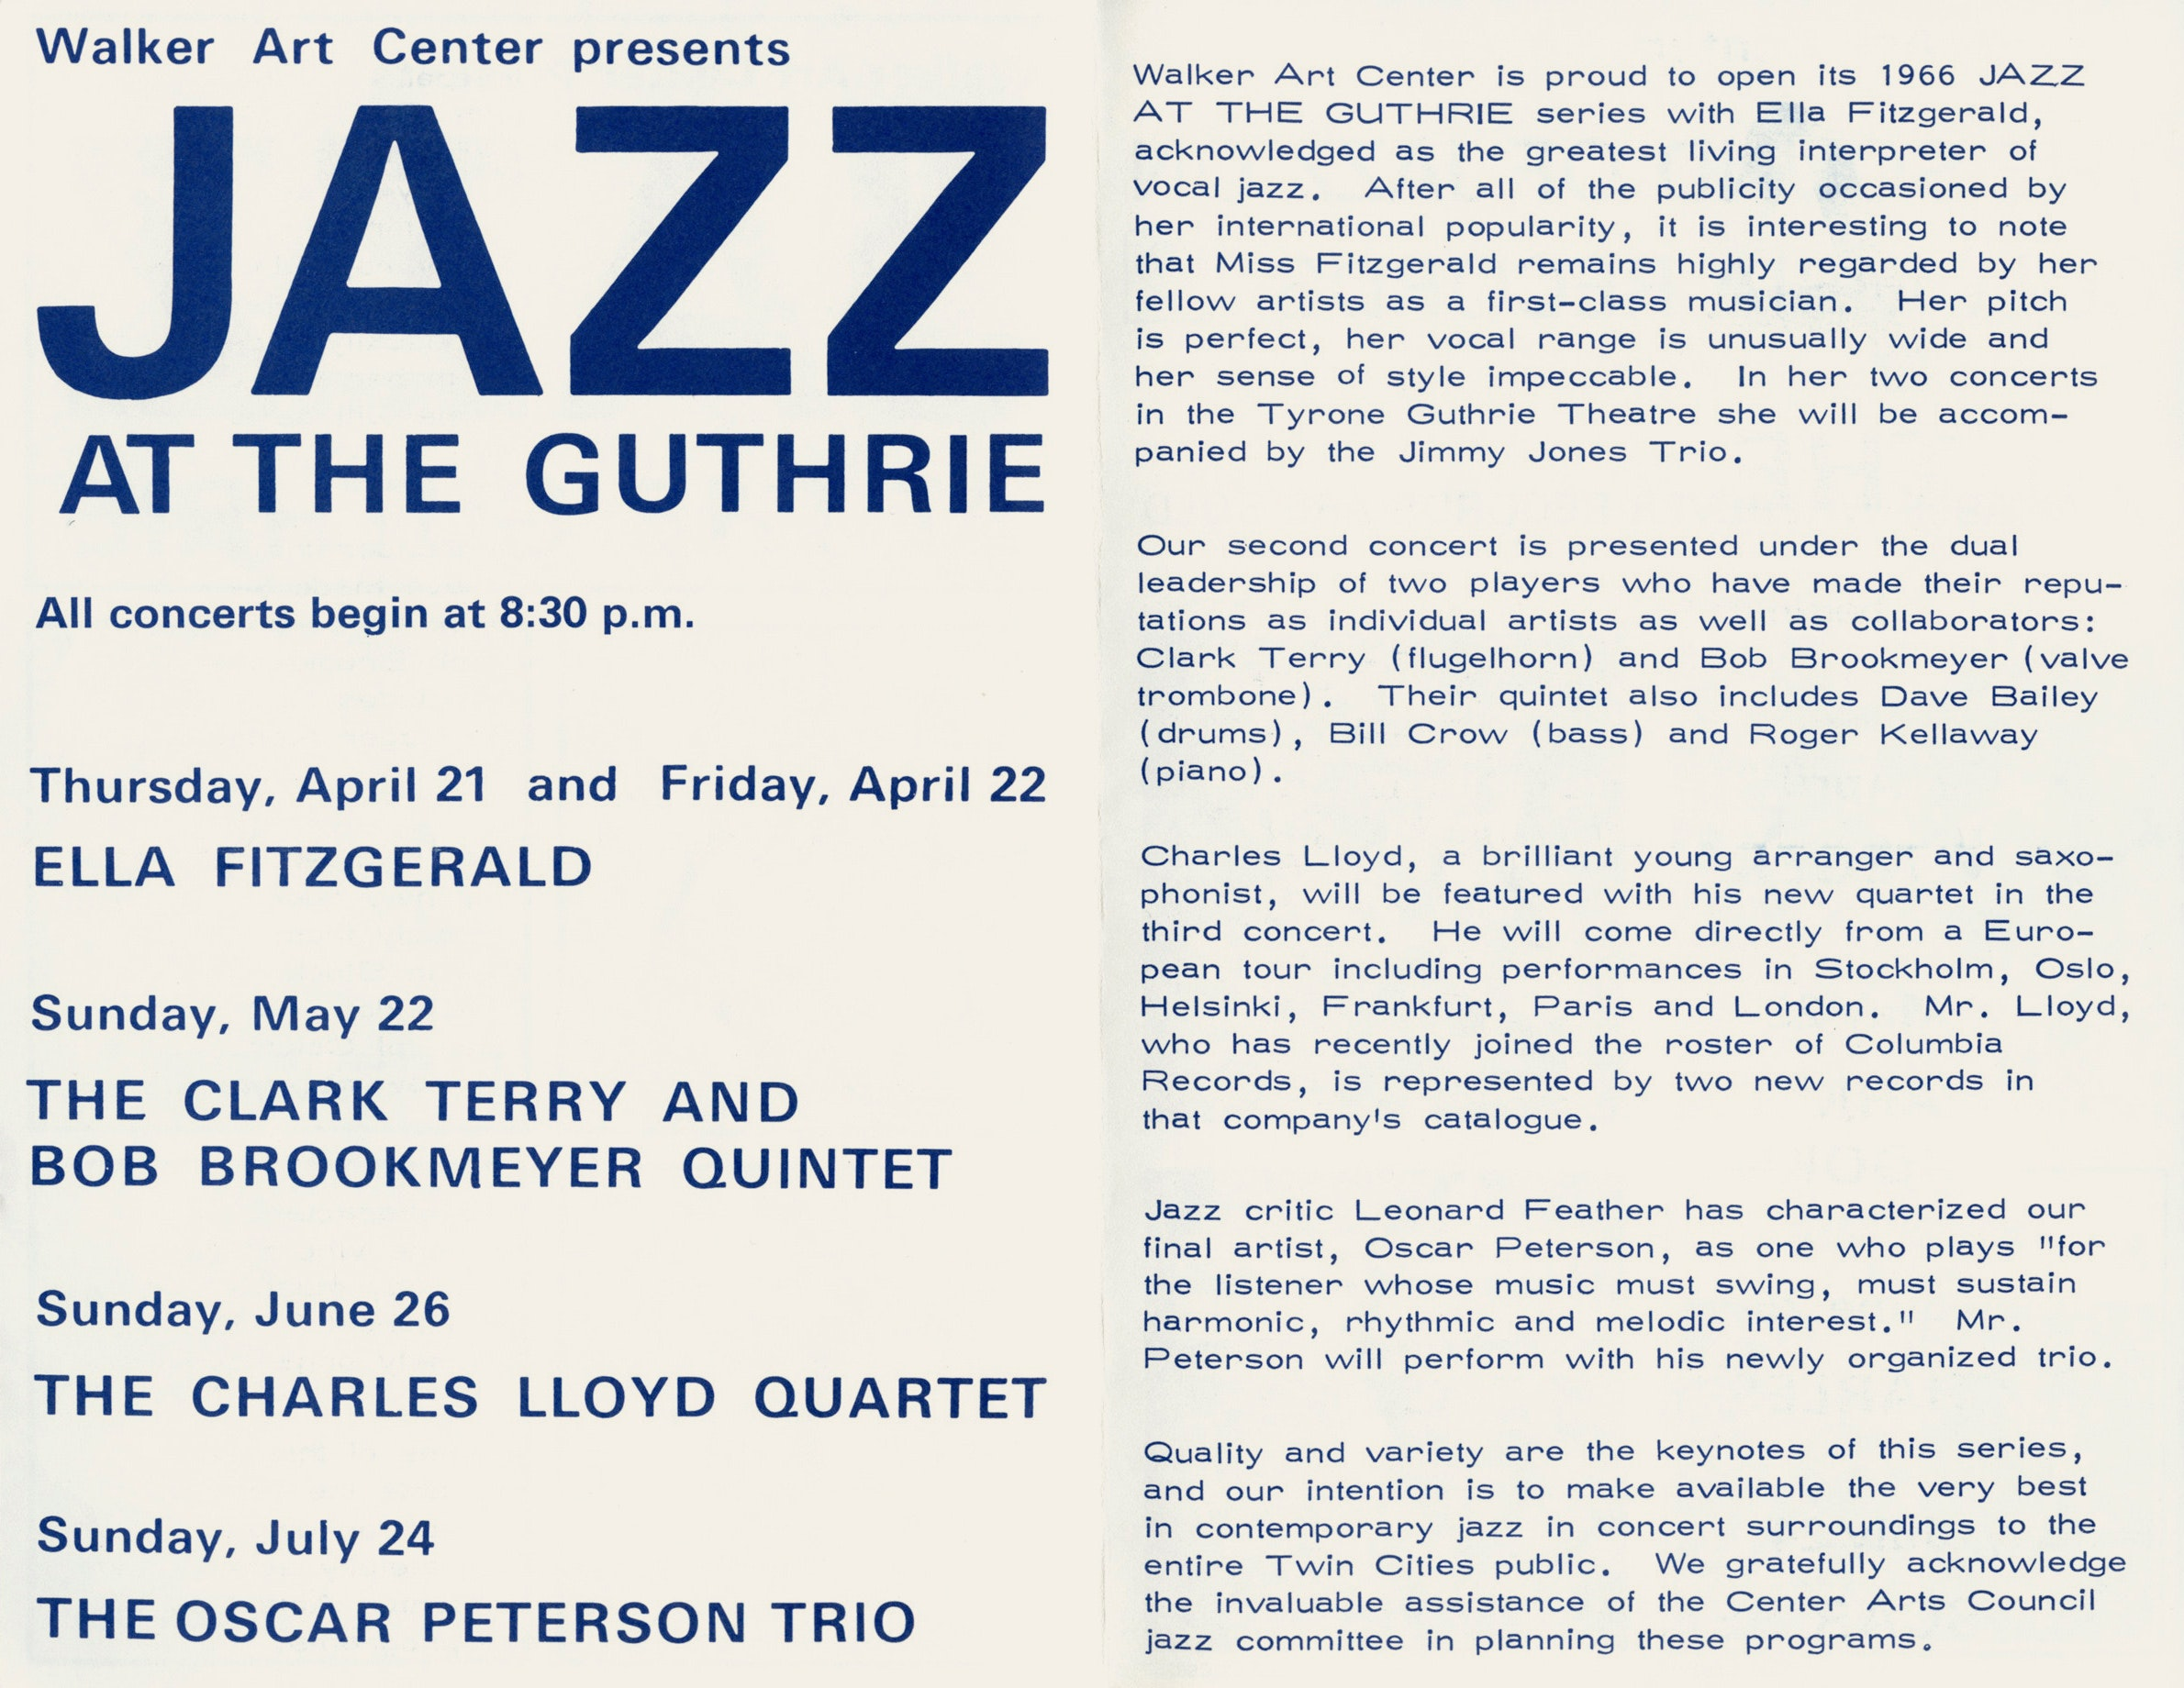 Program notes for Jazz at the Guthrie